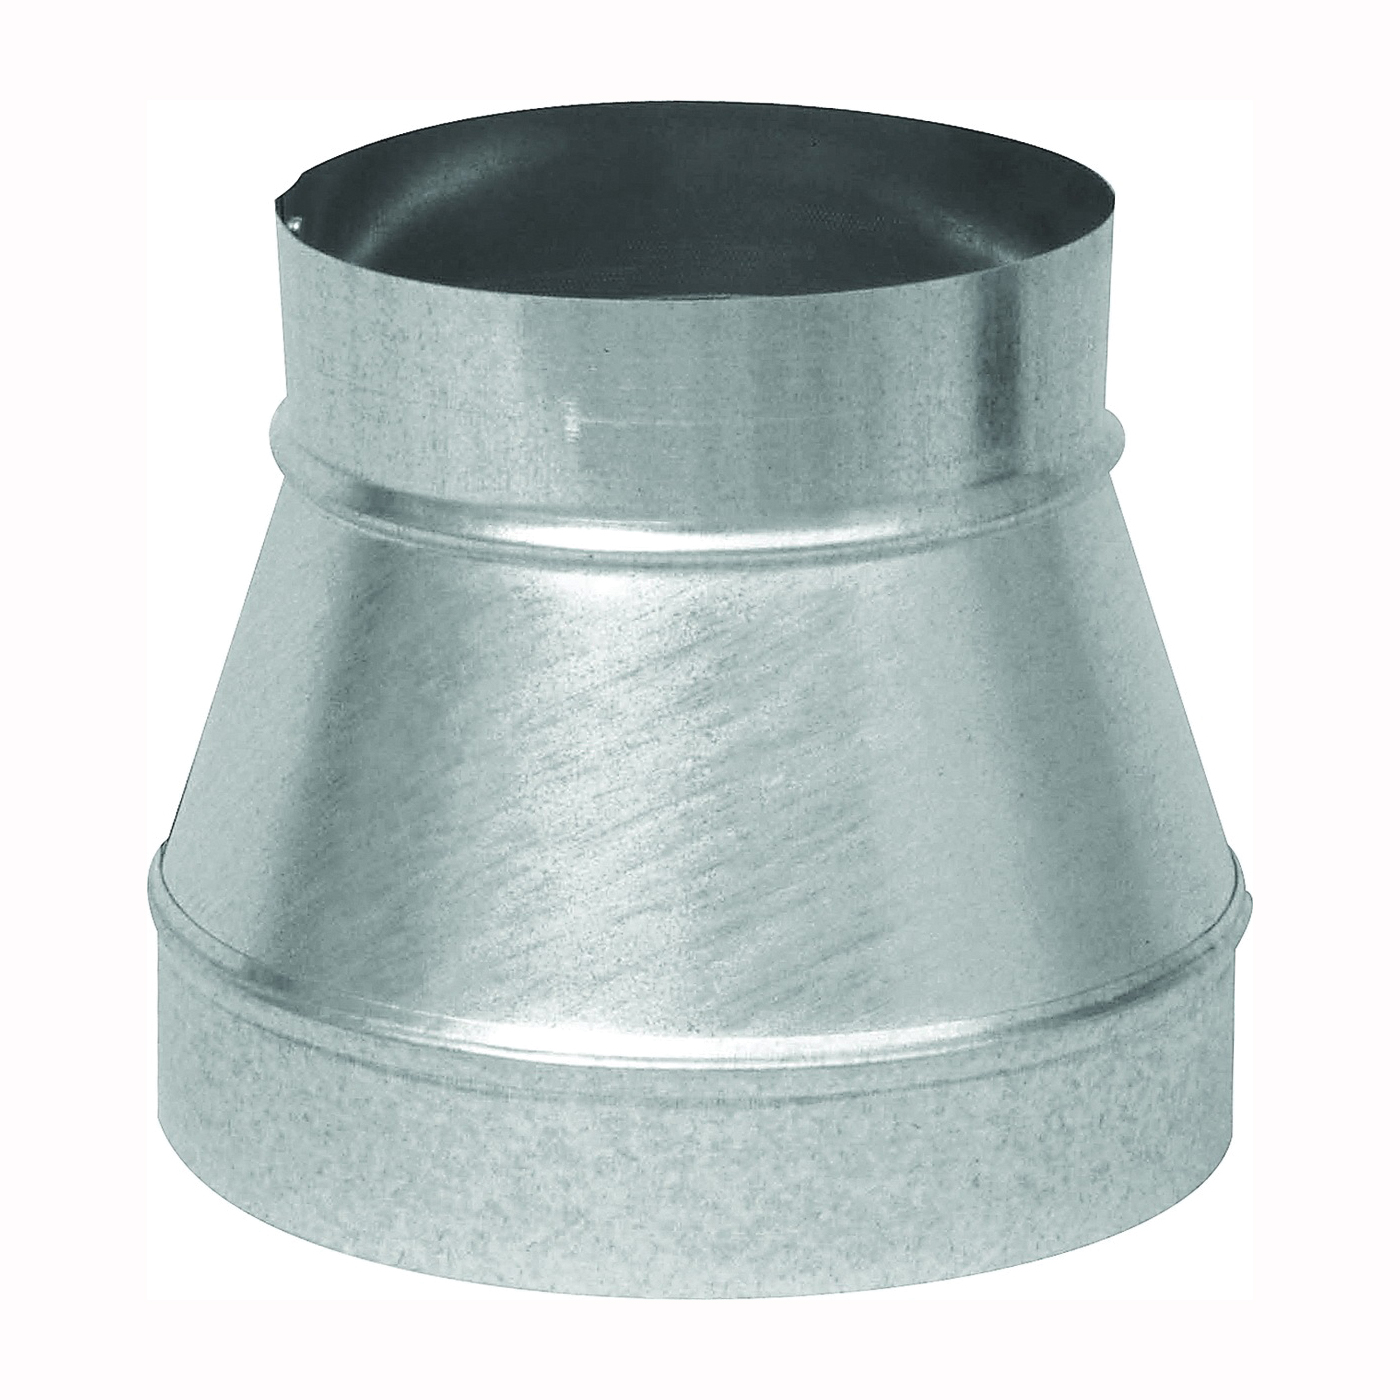 Picture of Imperial GV1199 Stove Pipe Reducer, 6 x 4 in, 26 ga Thick Wall, Black, Galvanized